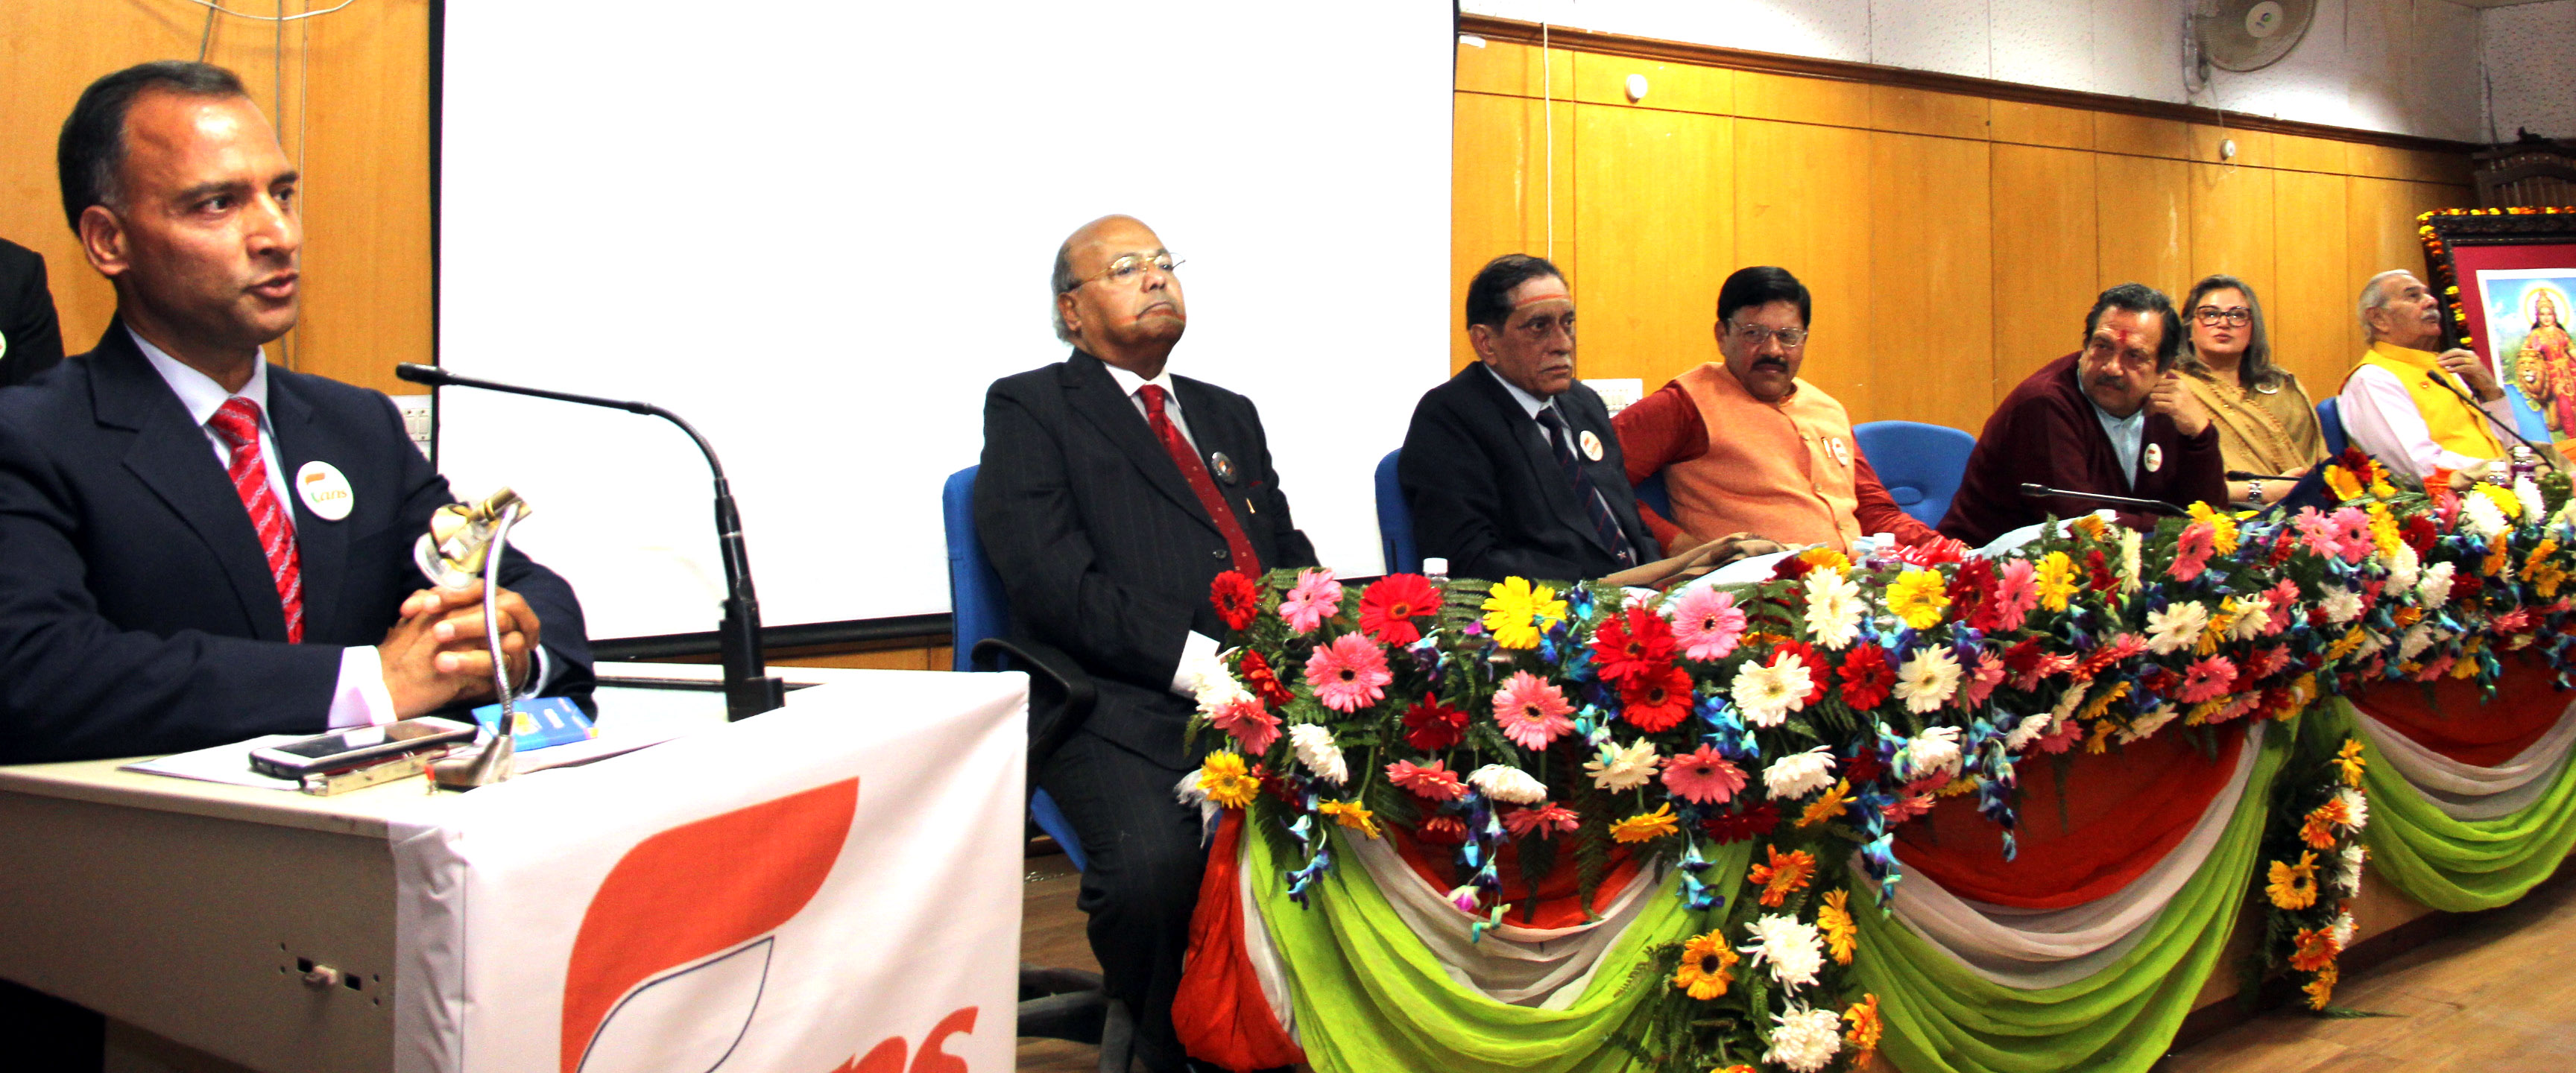 The Adviser to the Administrator, UT, Chandigarh, Mr. Vijay Dev  addressing as Guest of Honour at the inauguration of Proxy War Through Drugs Seminar in Golden Jubilee Hall Panjab University Chandigarh on Wednesday, February 10, 2016.